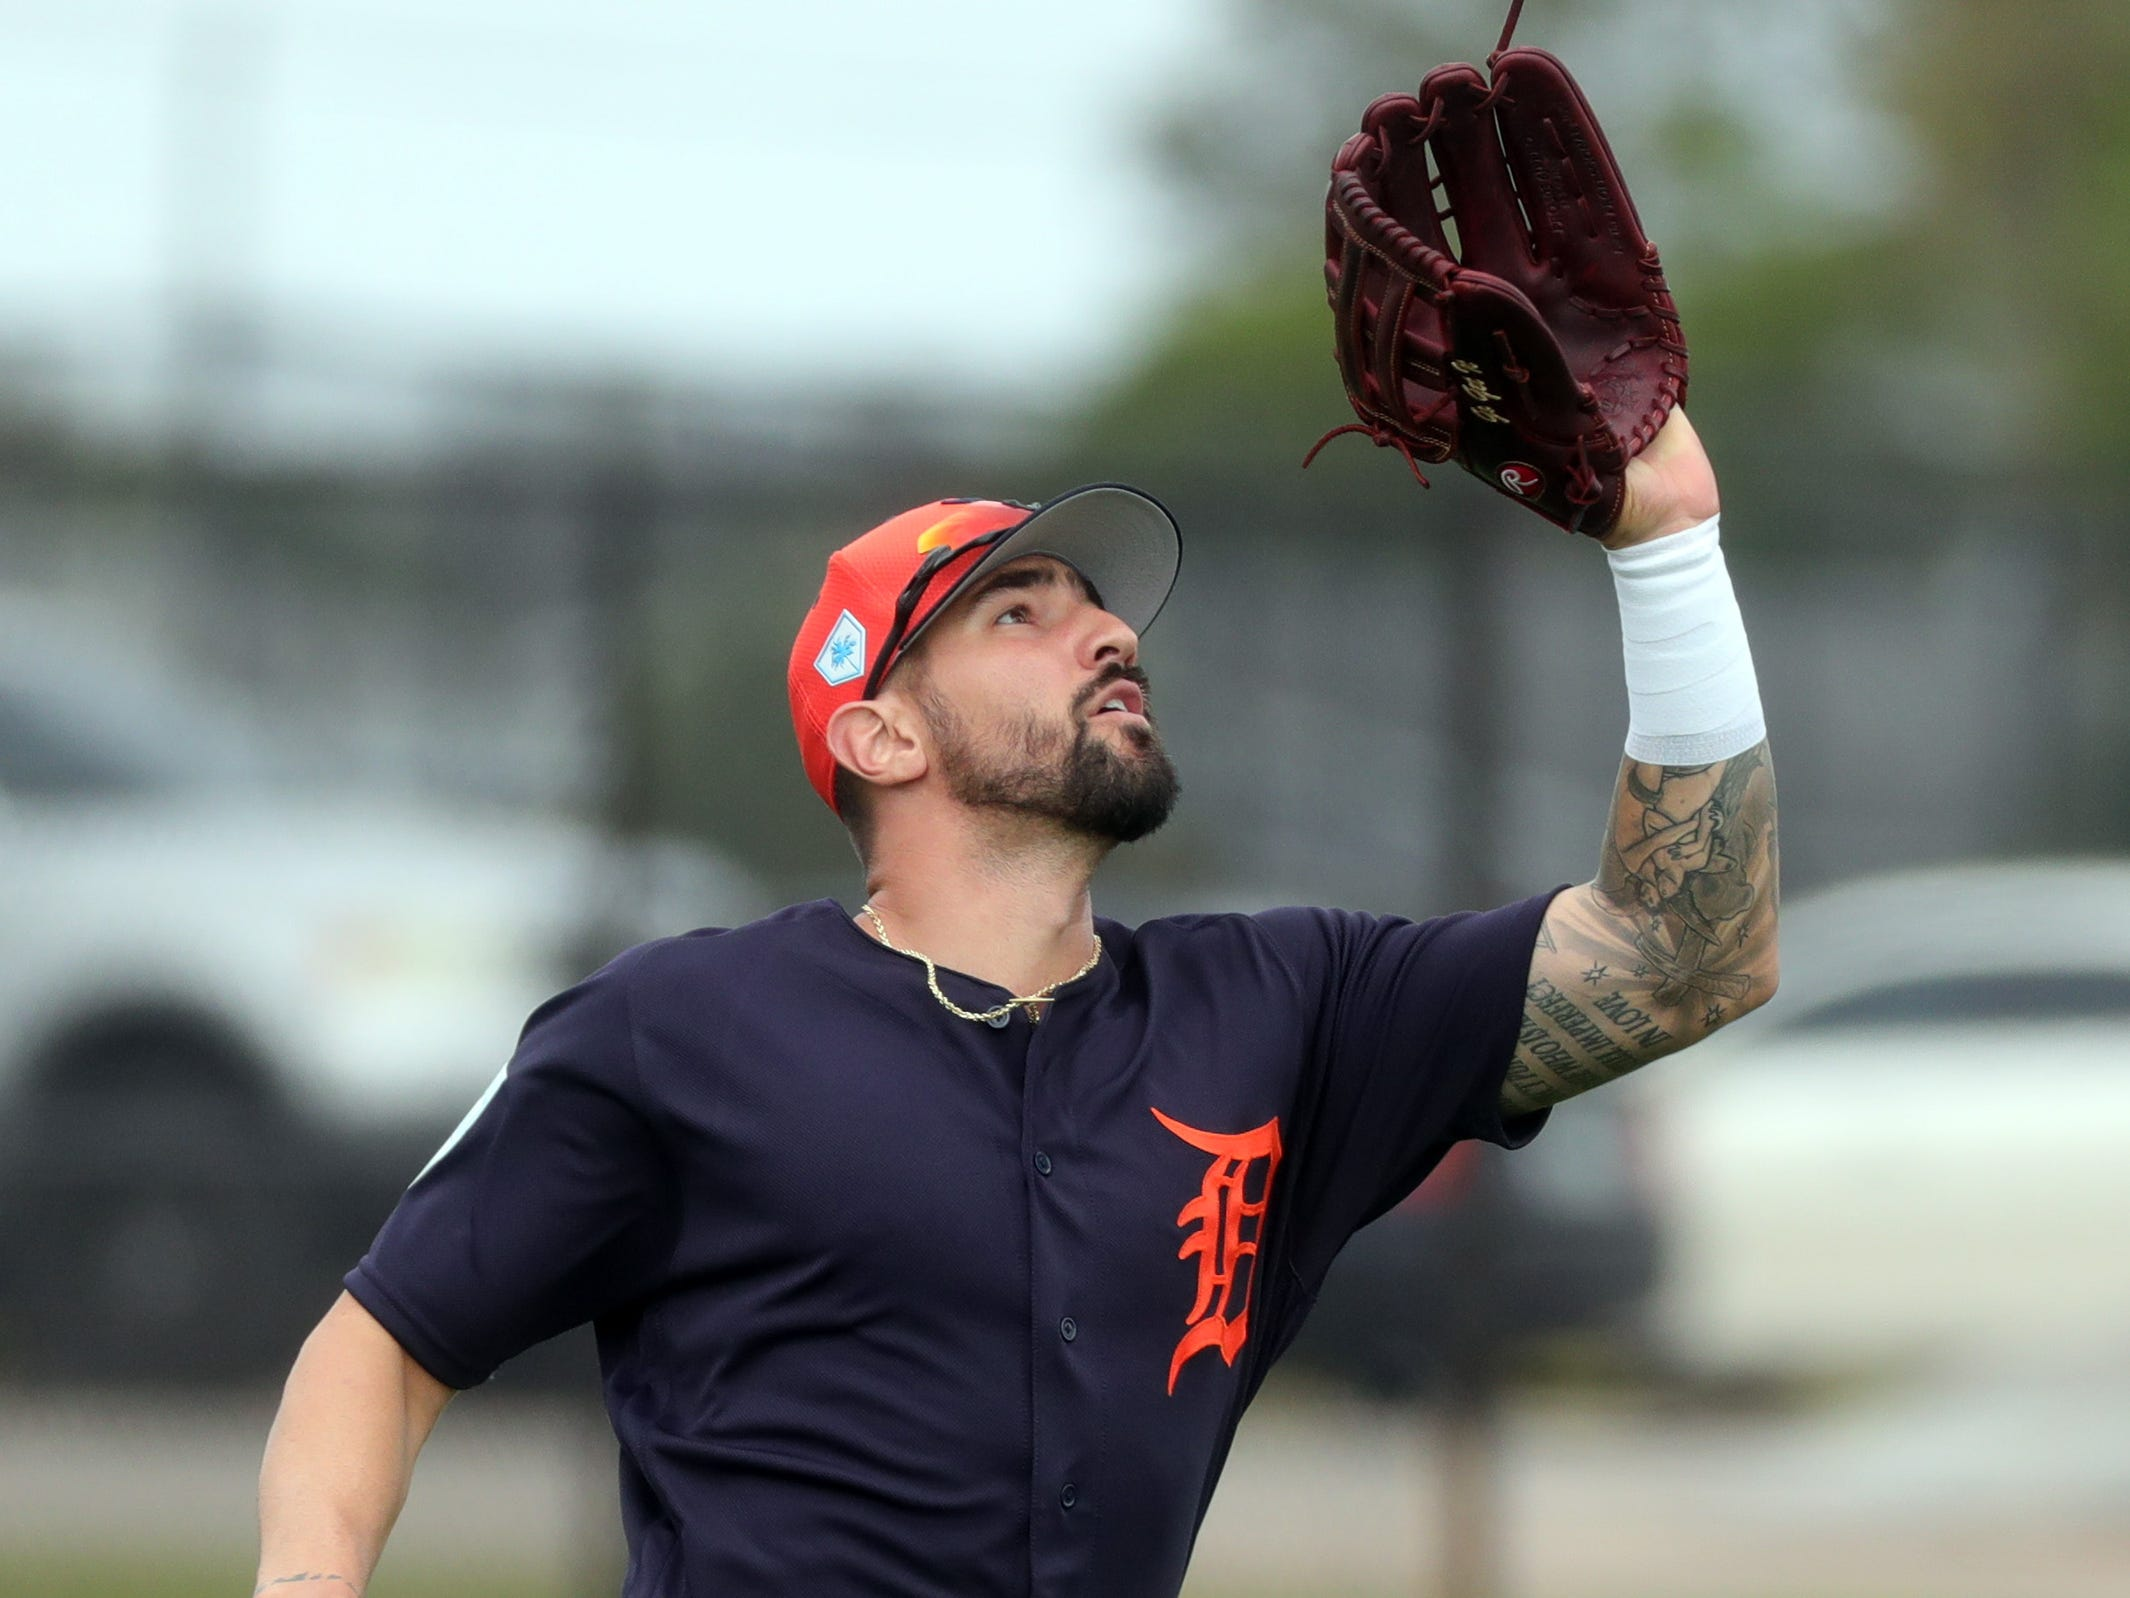 Tigers outfielder Nicholas Castellanos catches a fly ball during spring training Wednesday, Feb. 20, 2019, at Joker Marchant Stadium in Lakeland, Fla.